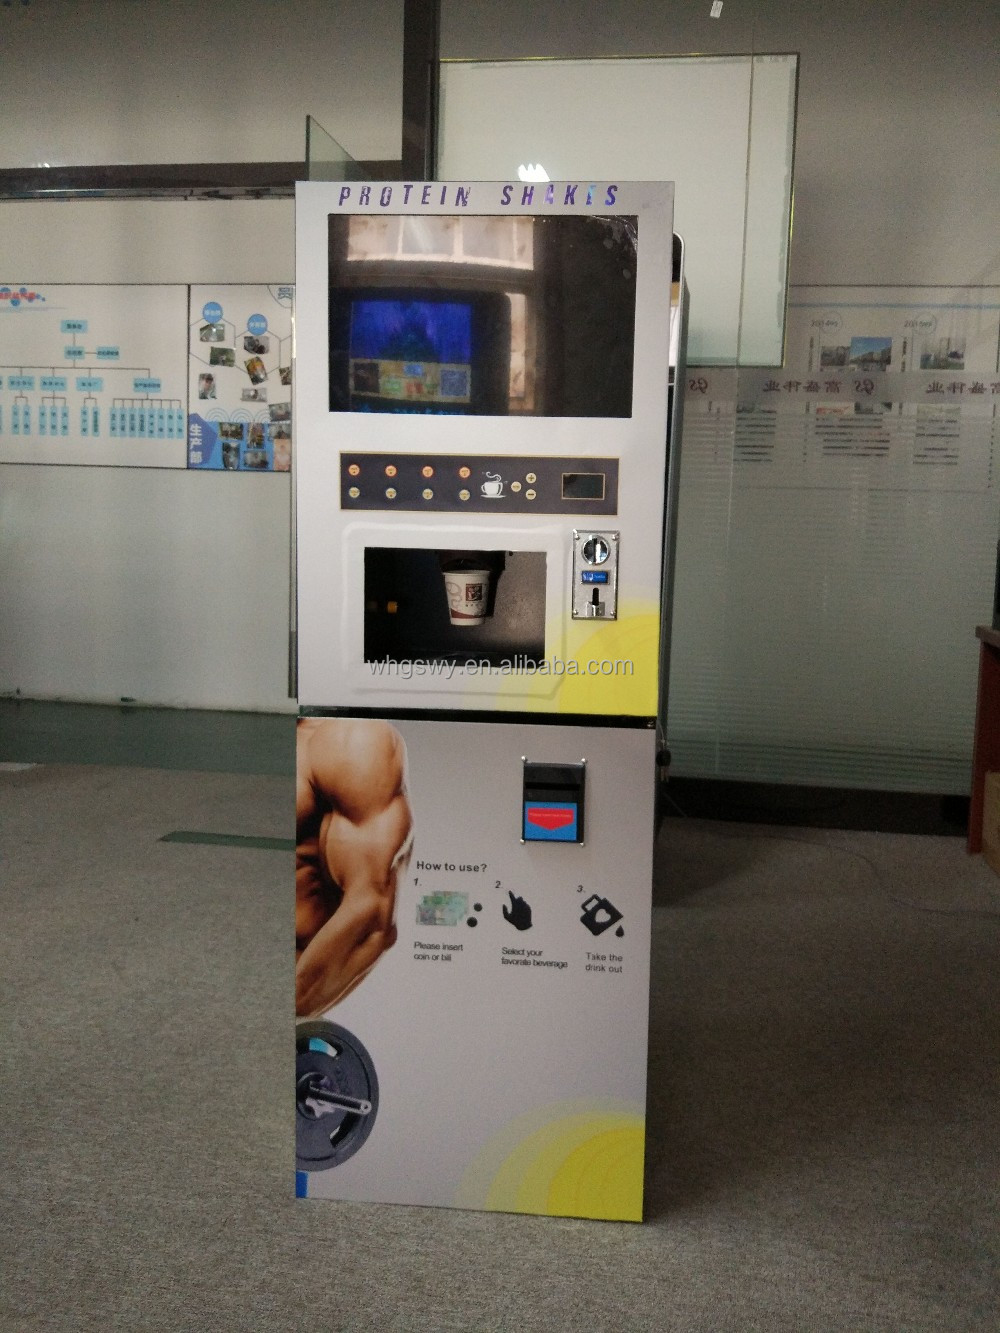 Gym/sports center drink vending machine for protein drink and energy drink